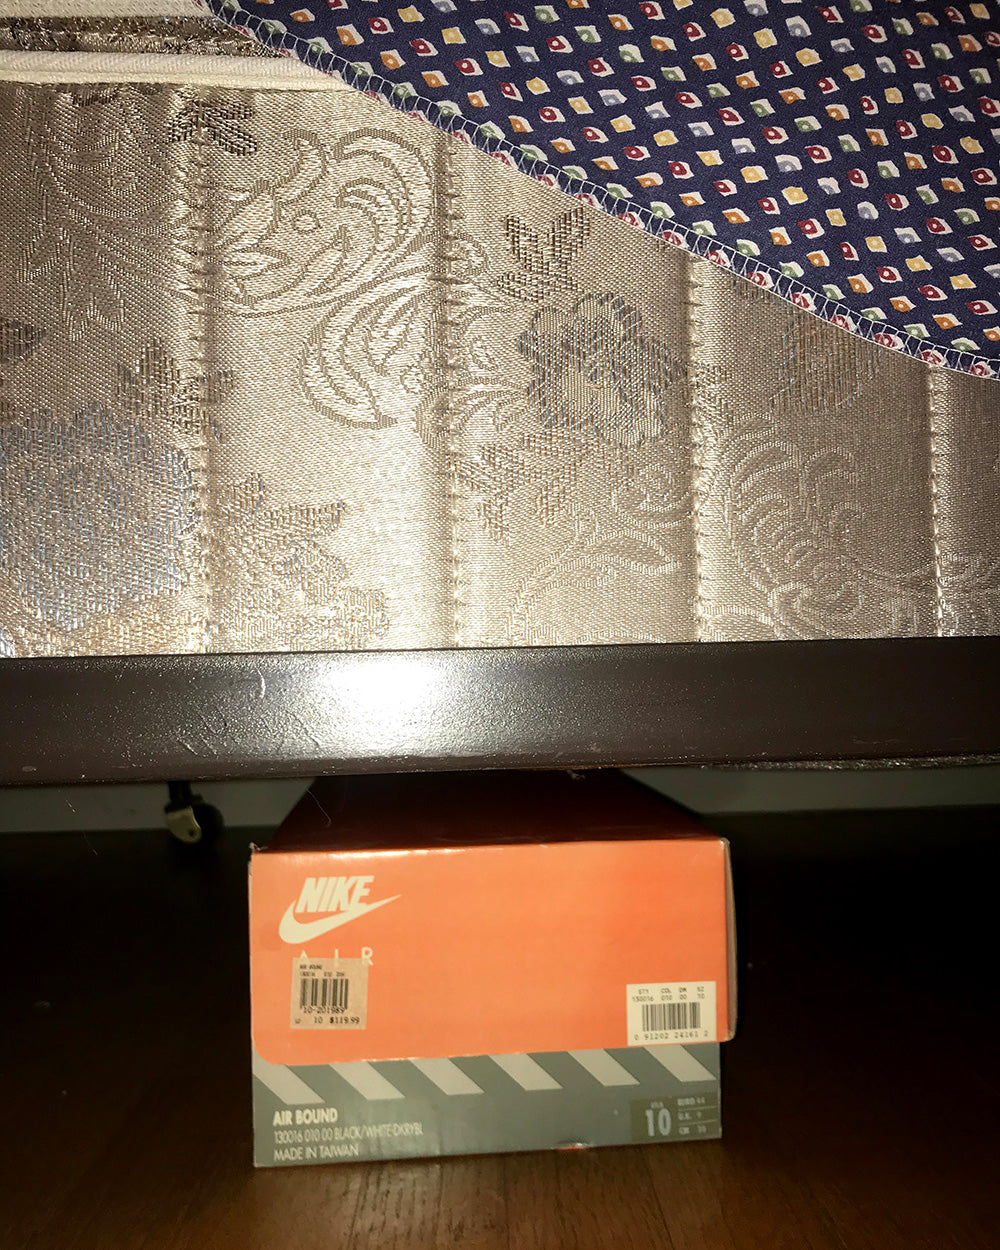 SPITGAN WEBZINE #3 Photo 8. Nike shoebox under the bed. Vancouver, BC